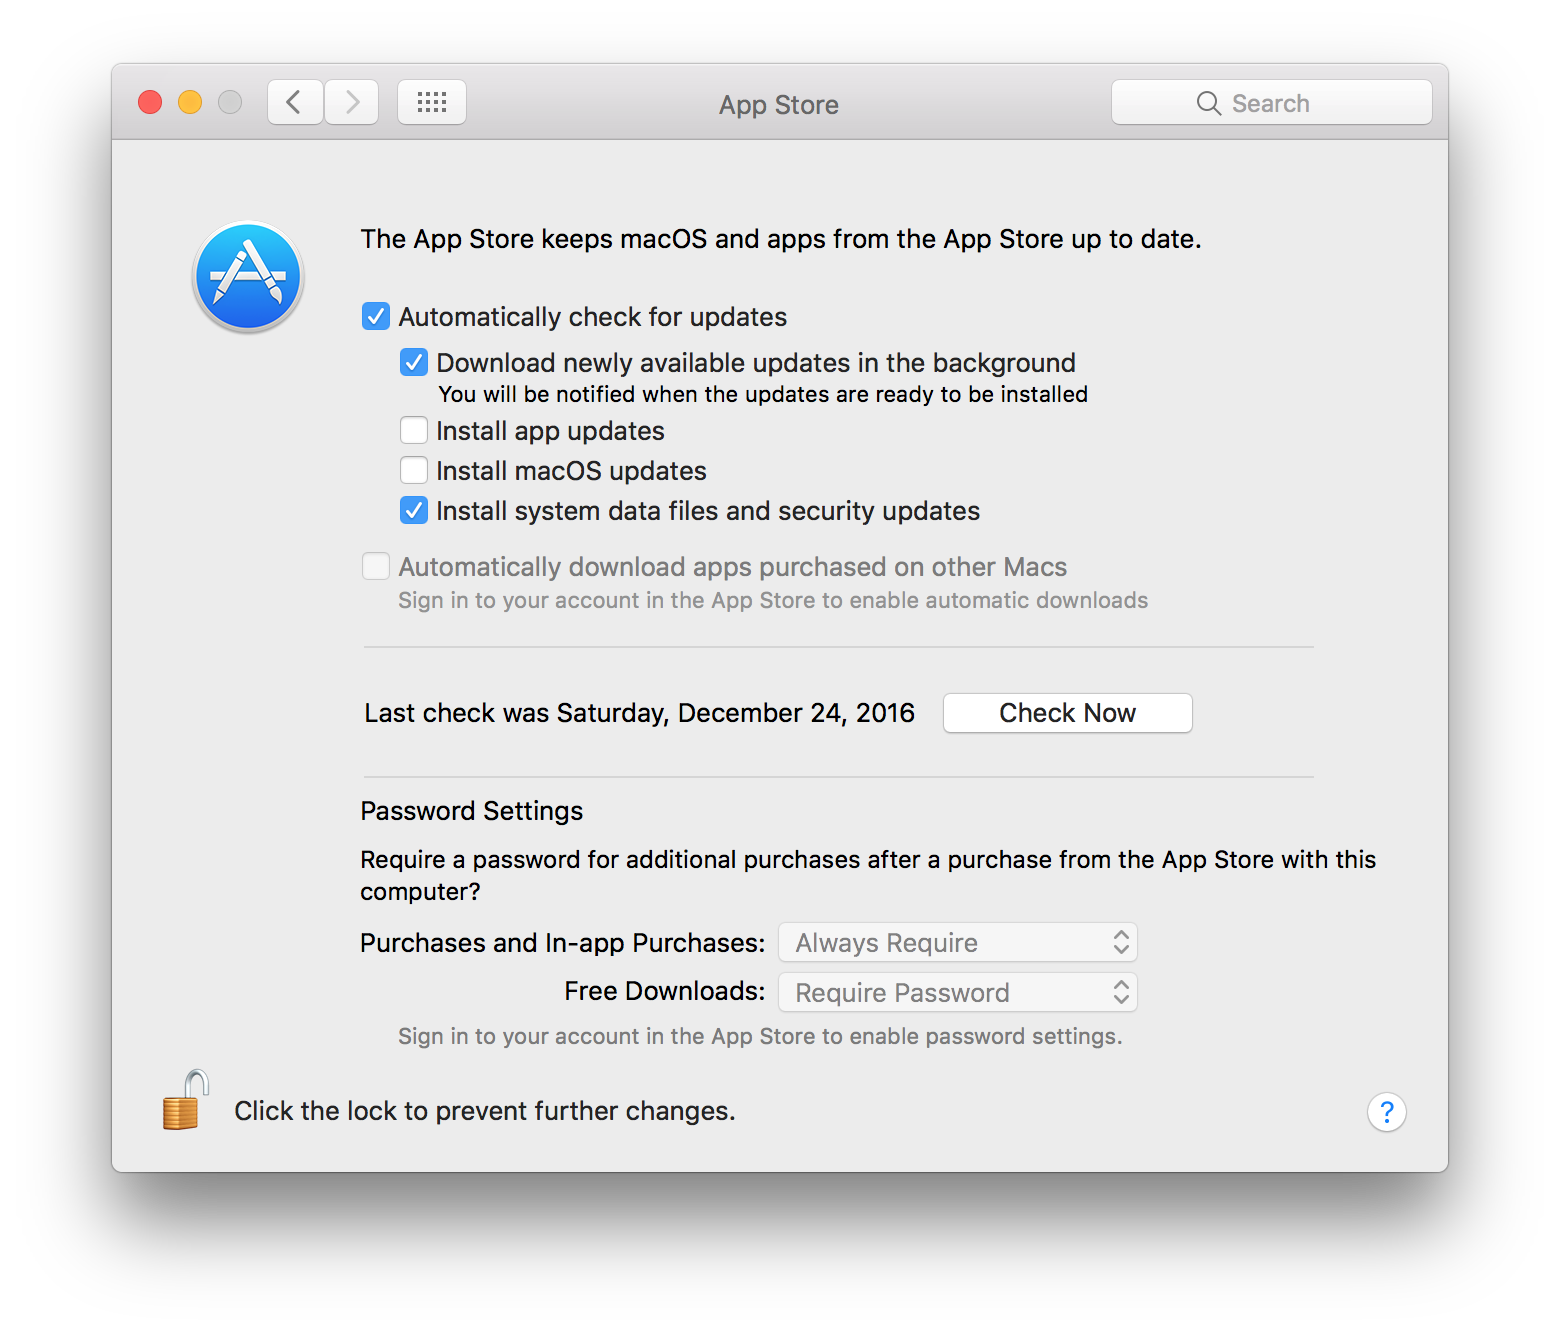 How to Securely Set Up a New Mac in 12 Easy Steps | The Mac Security